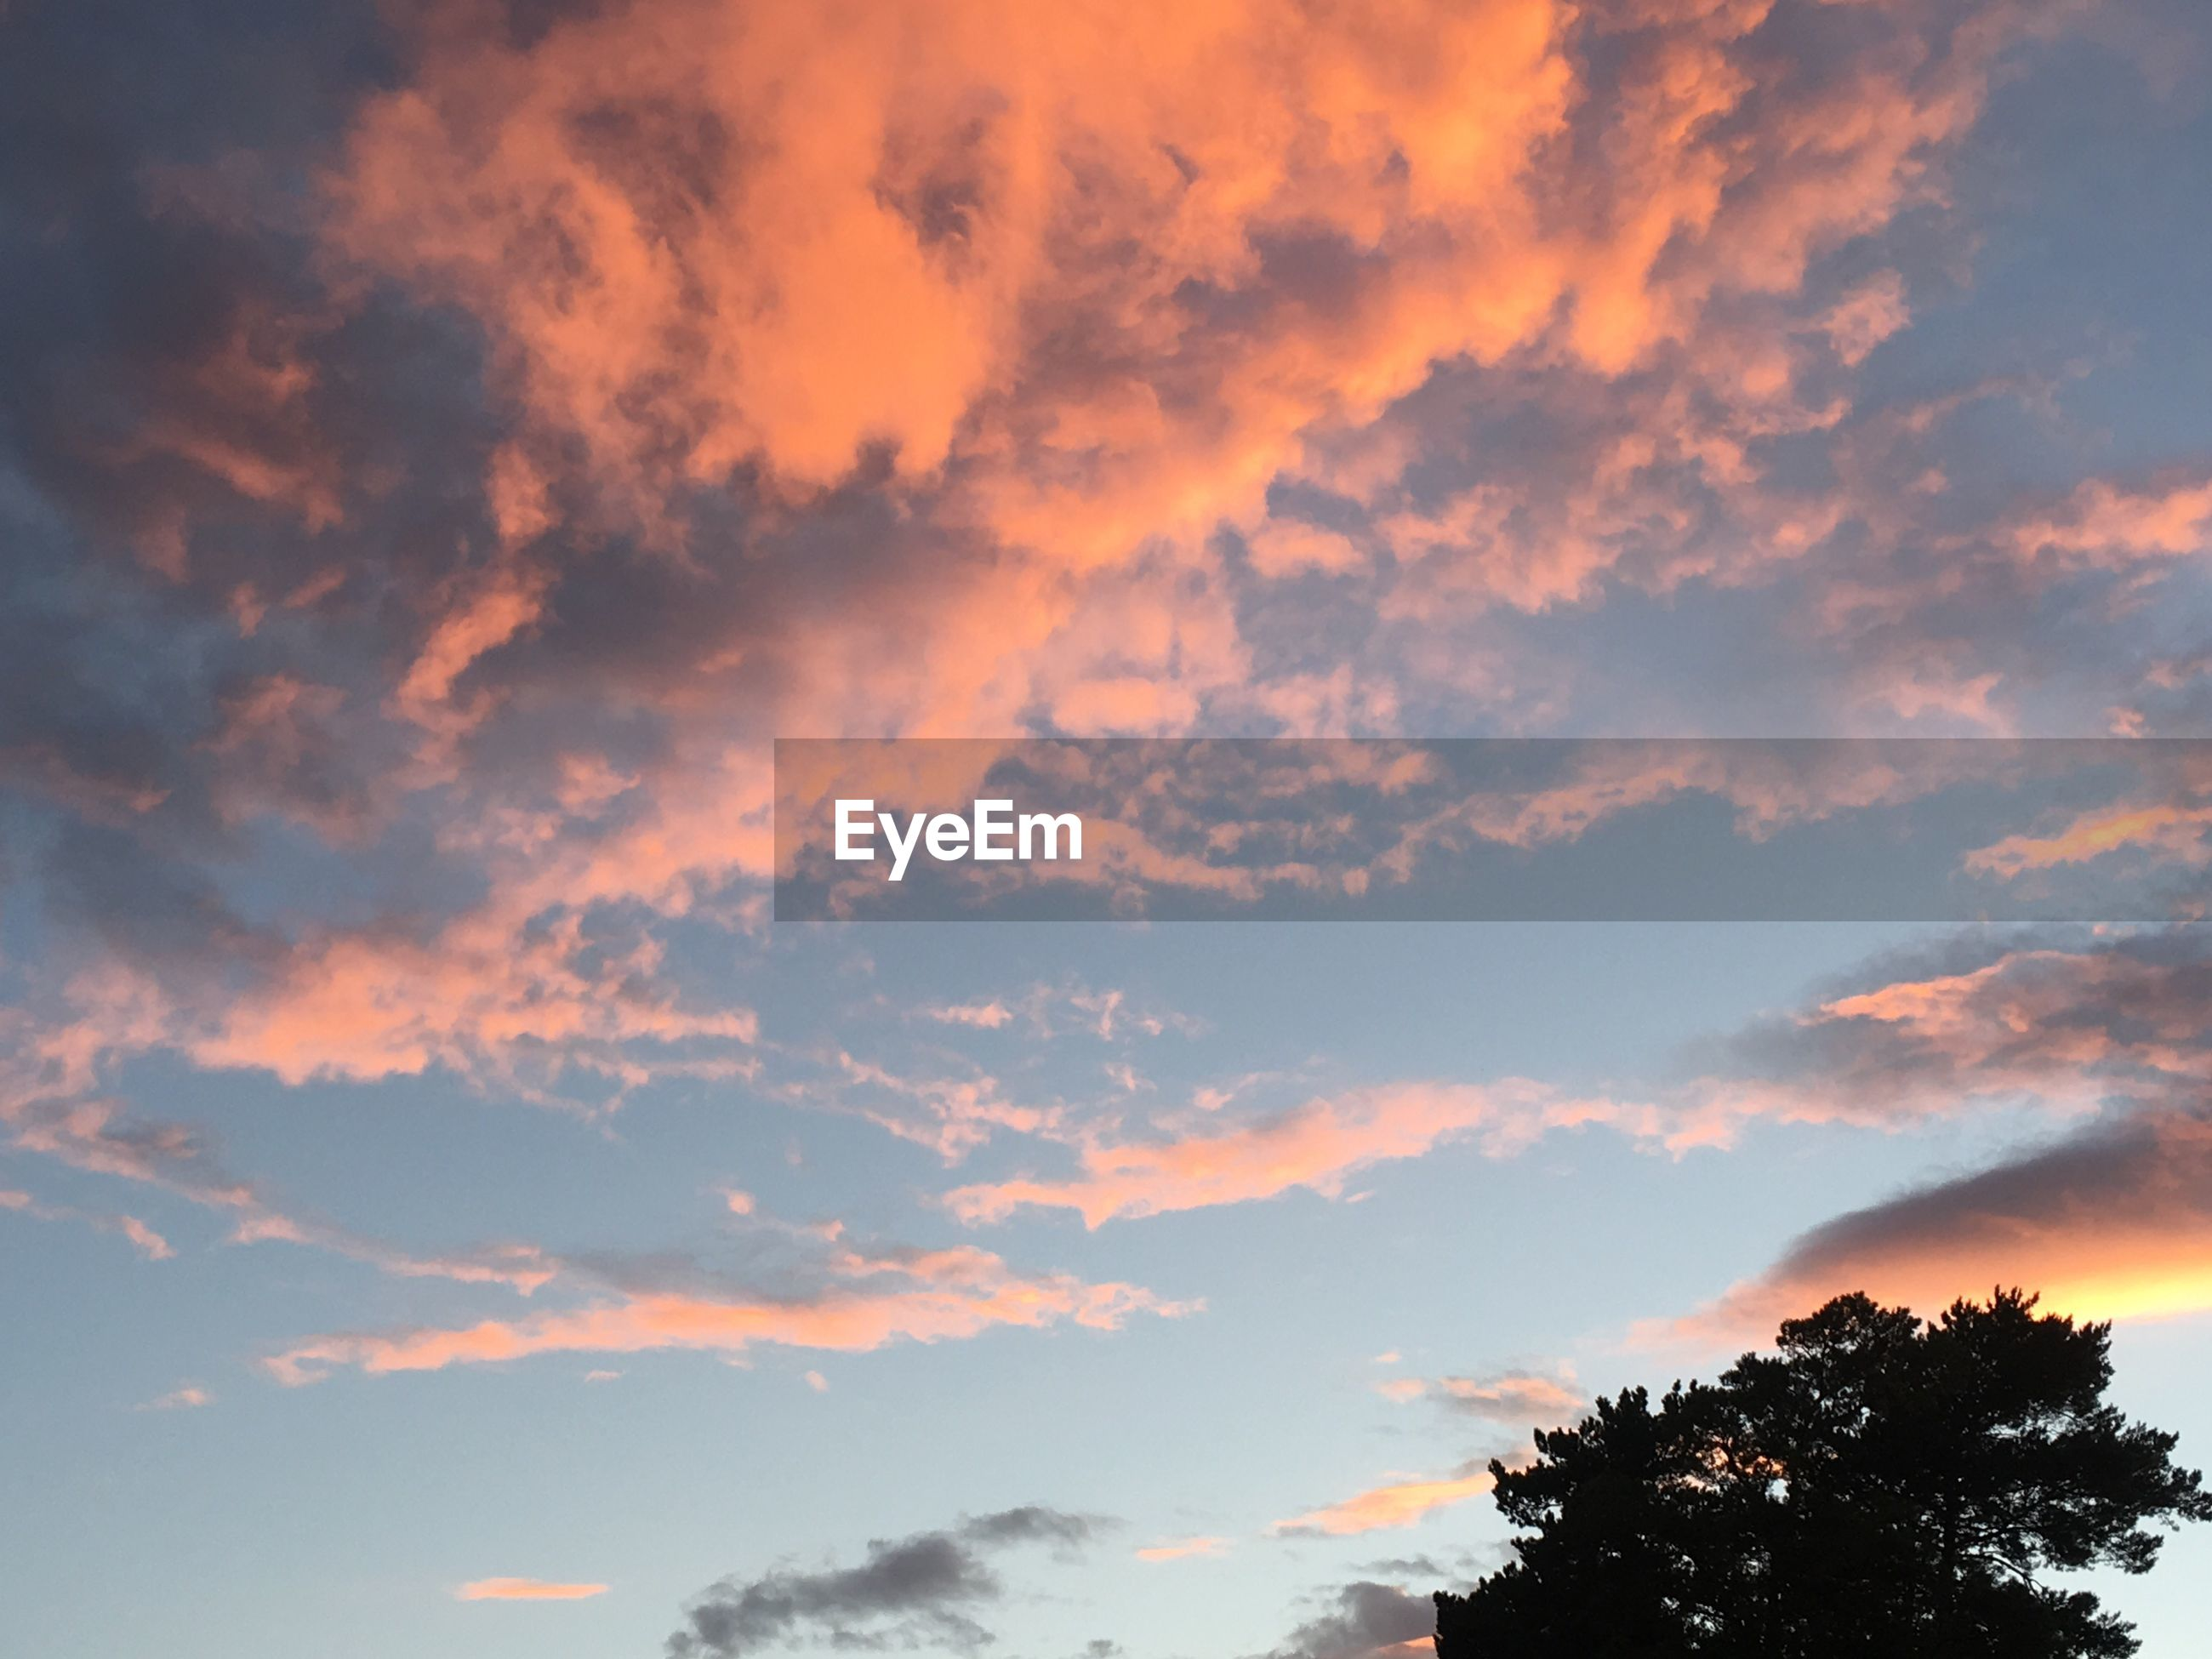 tree, low angle view, sky, scenics, sunset, beauty in nature, tranquil scene, tranquility, cloud - sky, nature, cloud, growth, high section, outdoors, cloudy, day, orange color, cloudscape, treetop, majestic, no people, non-urban scene, outline, dramatic sky, atmospheric mood, tree top